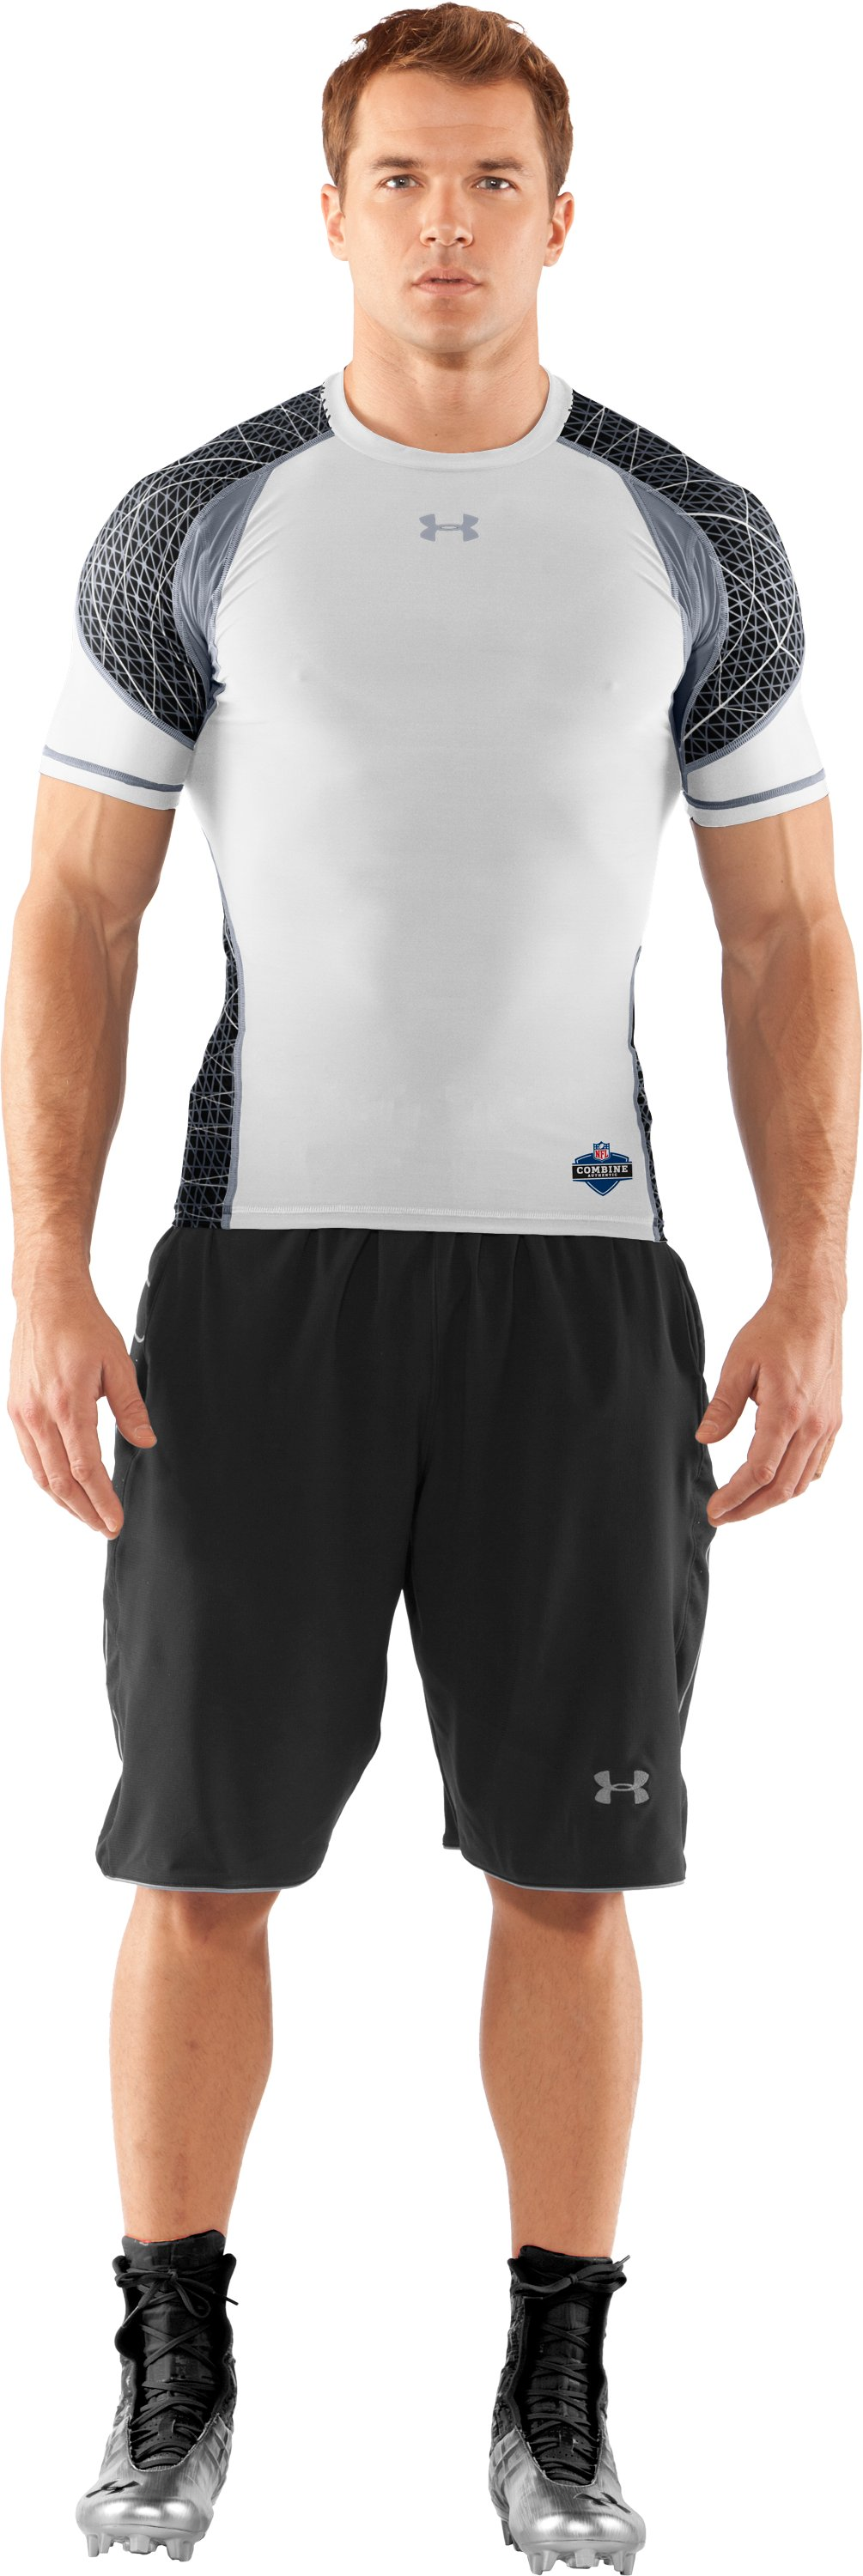 Men's NFL Combine Authentic Warp Speed Short Sleeve, White, zoomed image